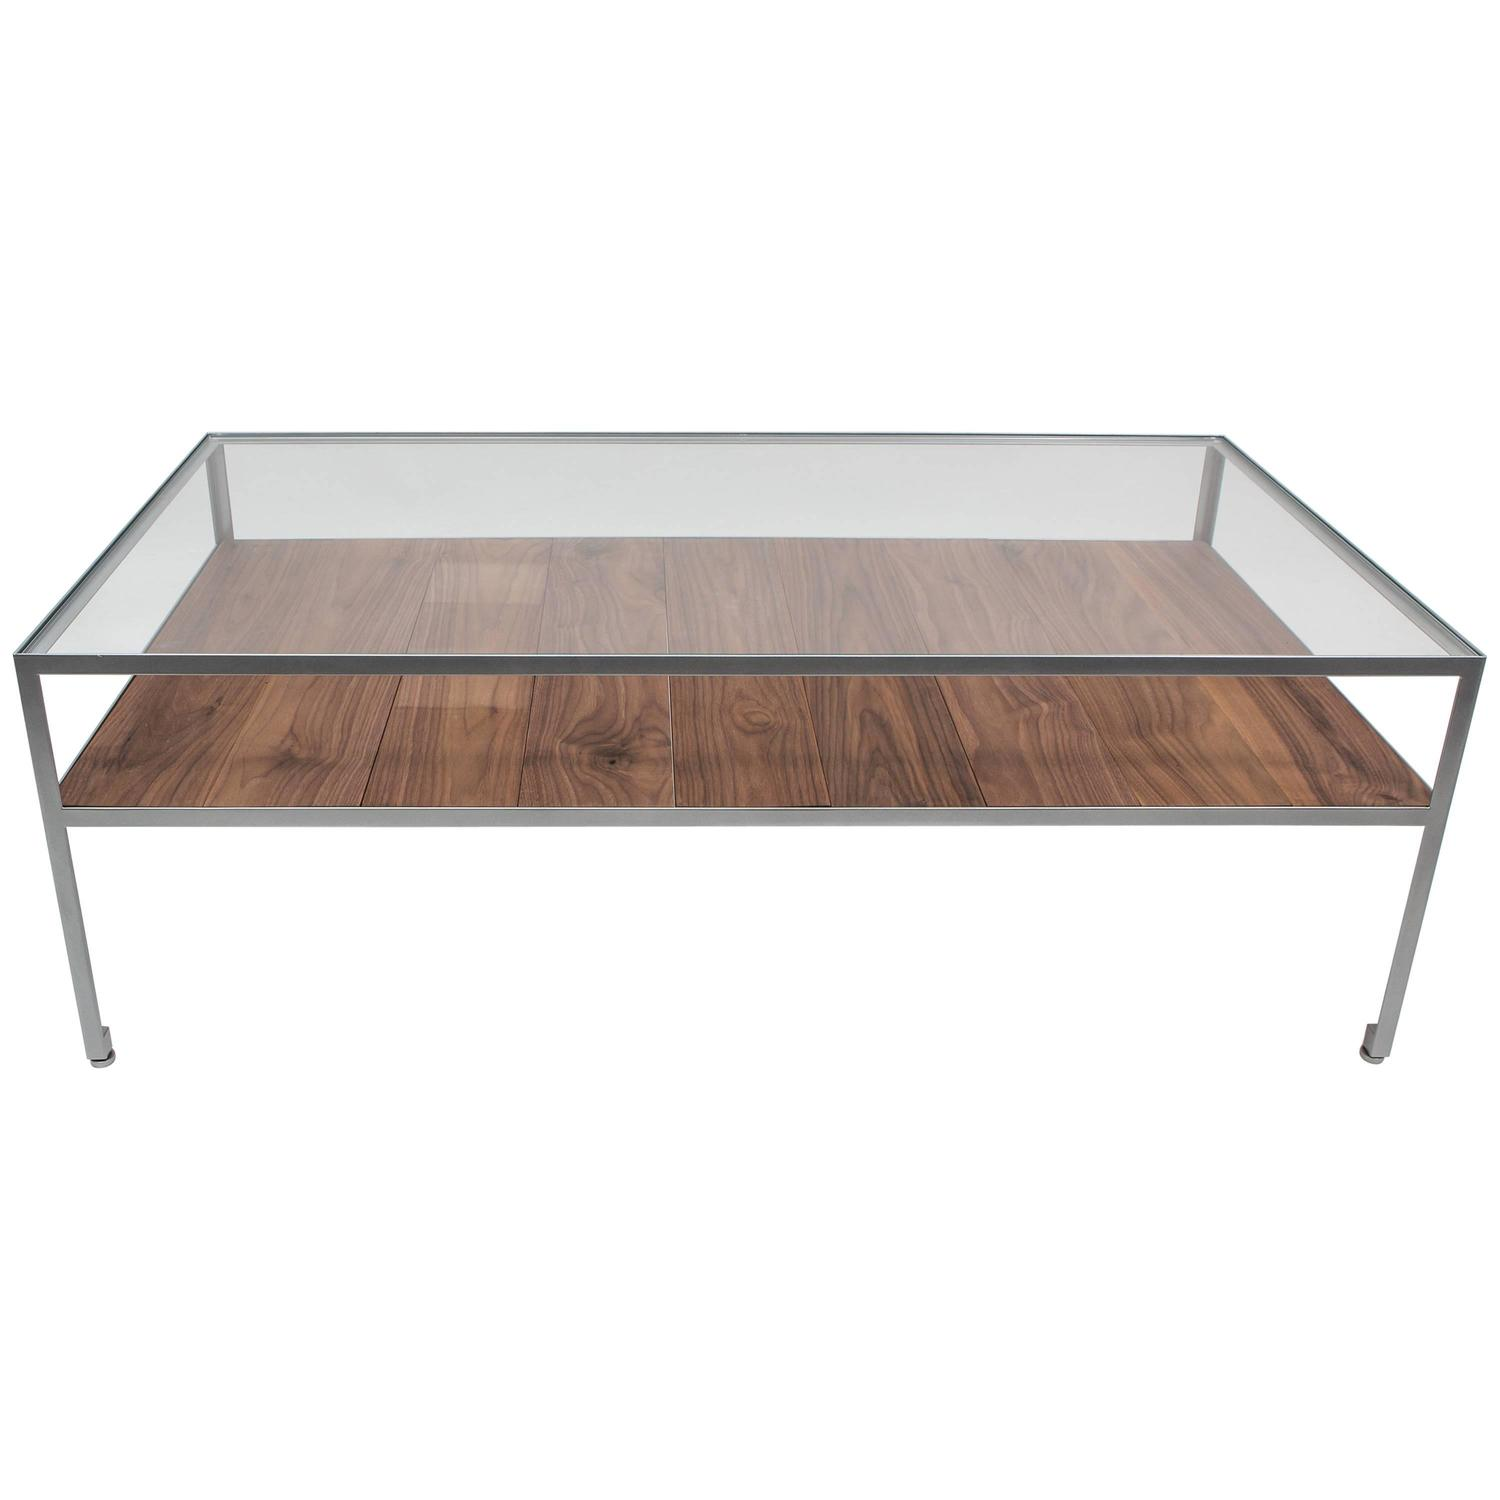 Pintor Coffee Table Walnut Frame with Stainless Steel Inlay